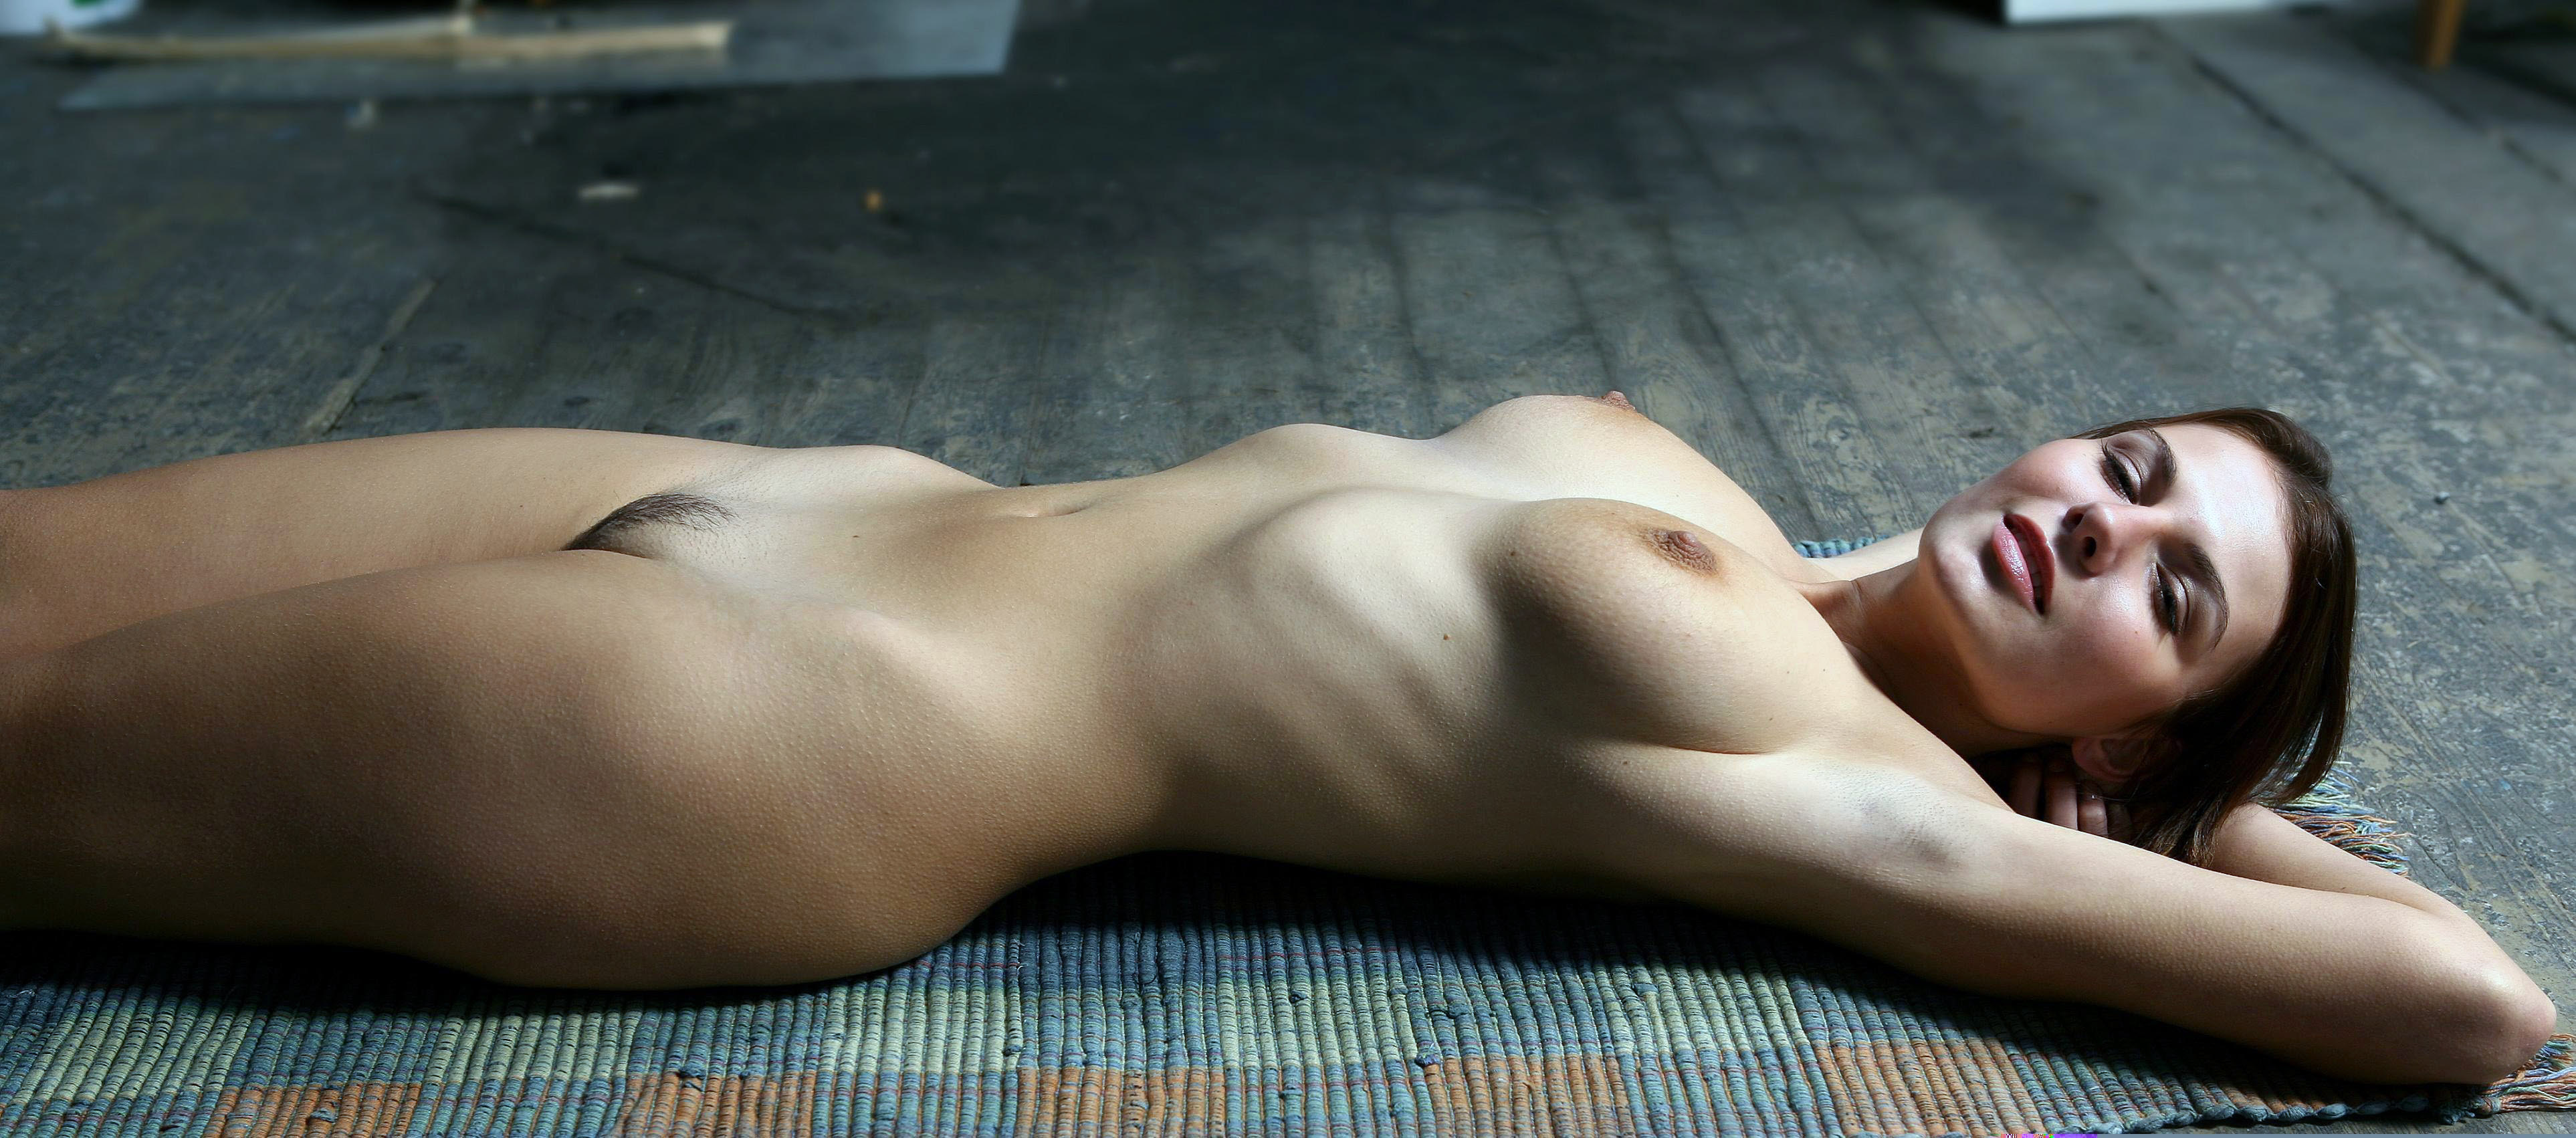 Hot chick laying down naked idea